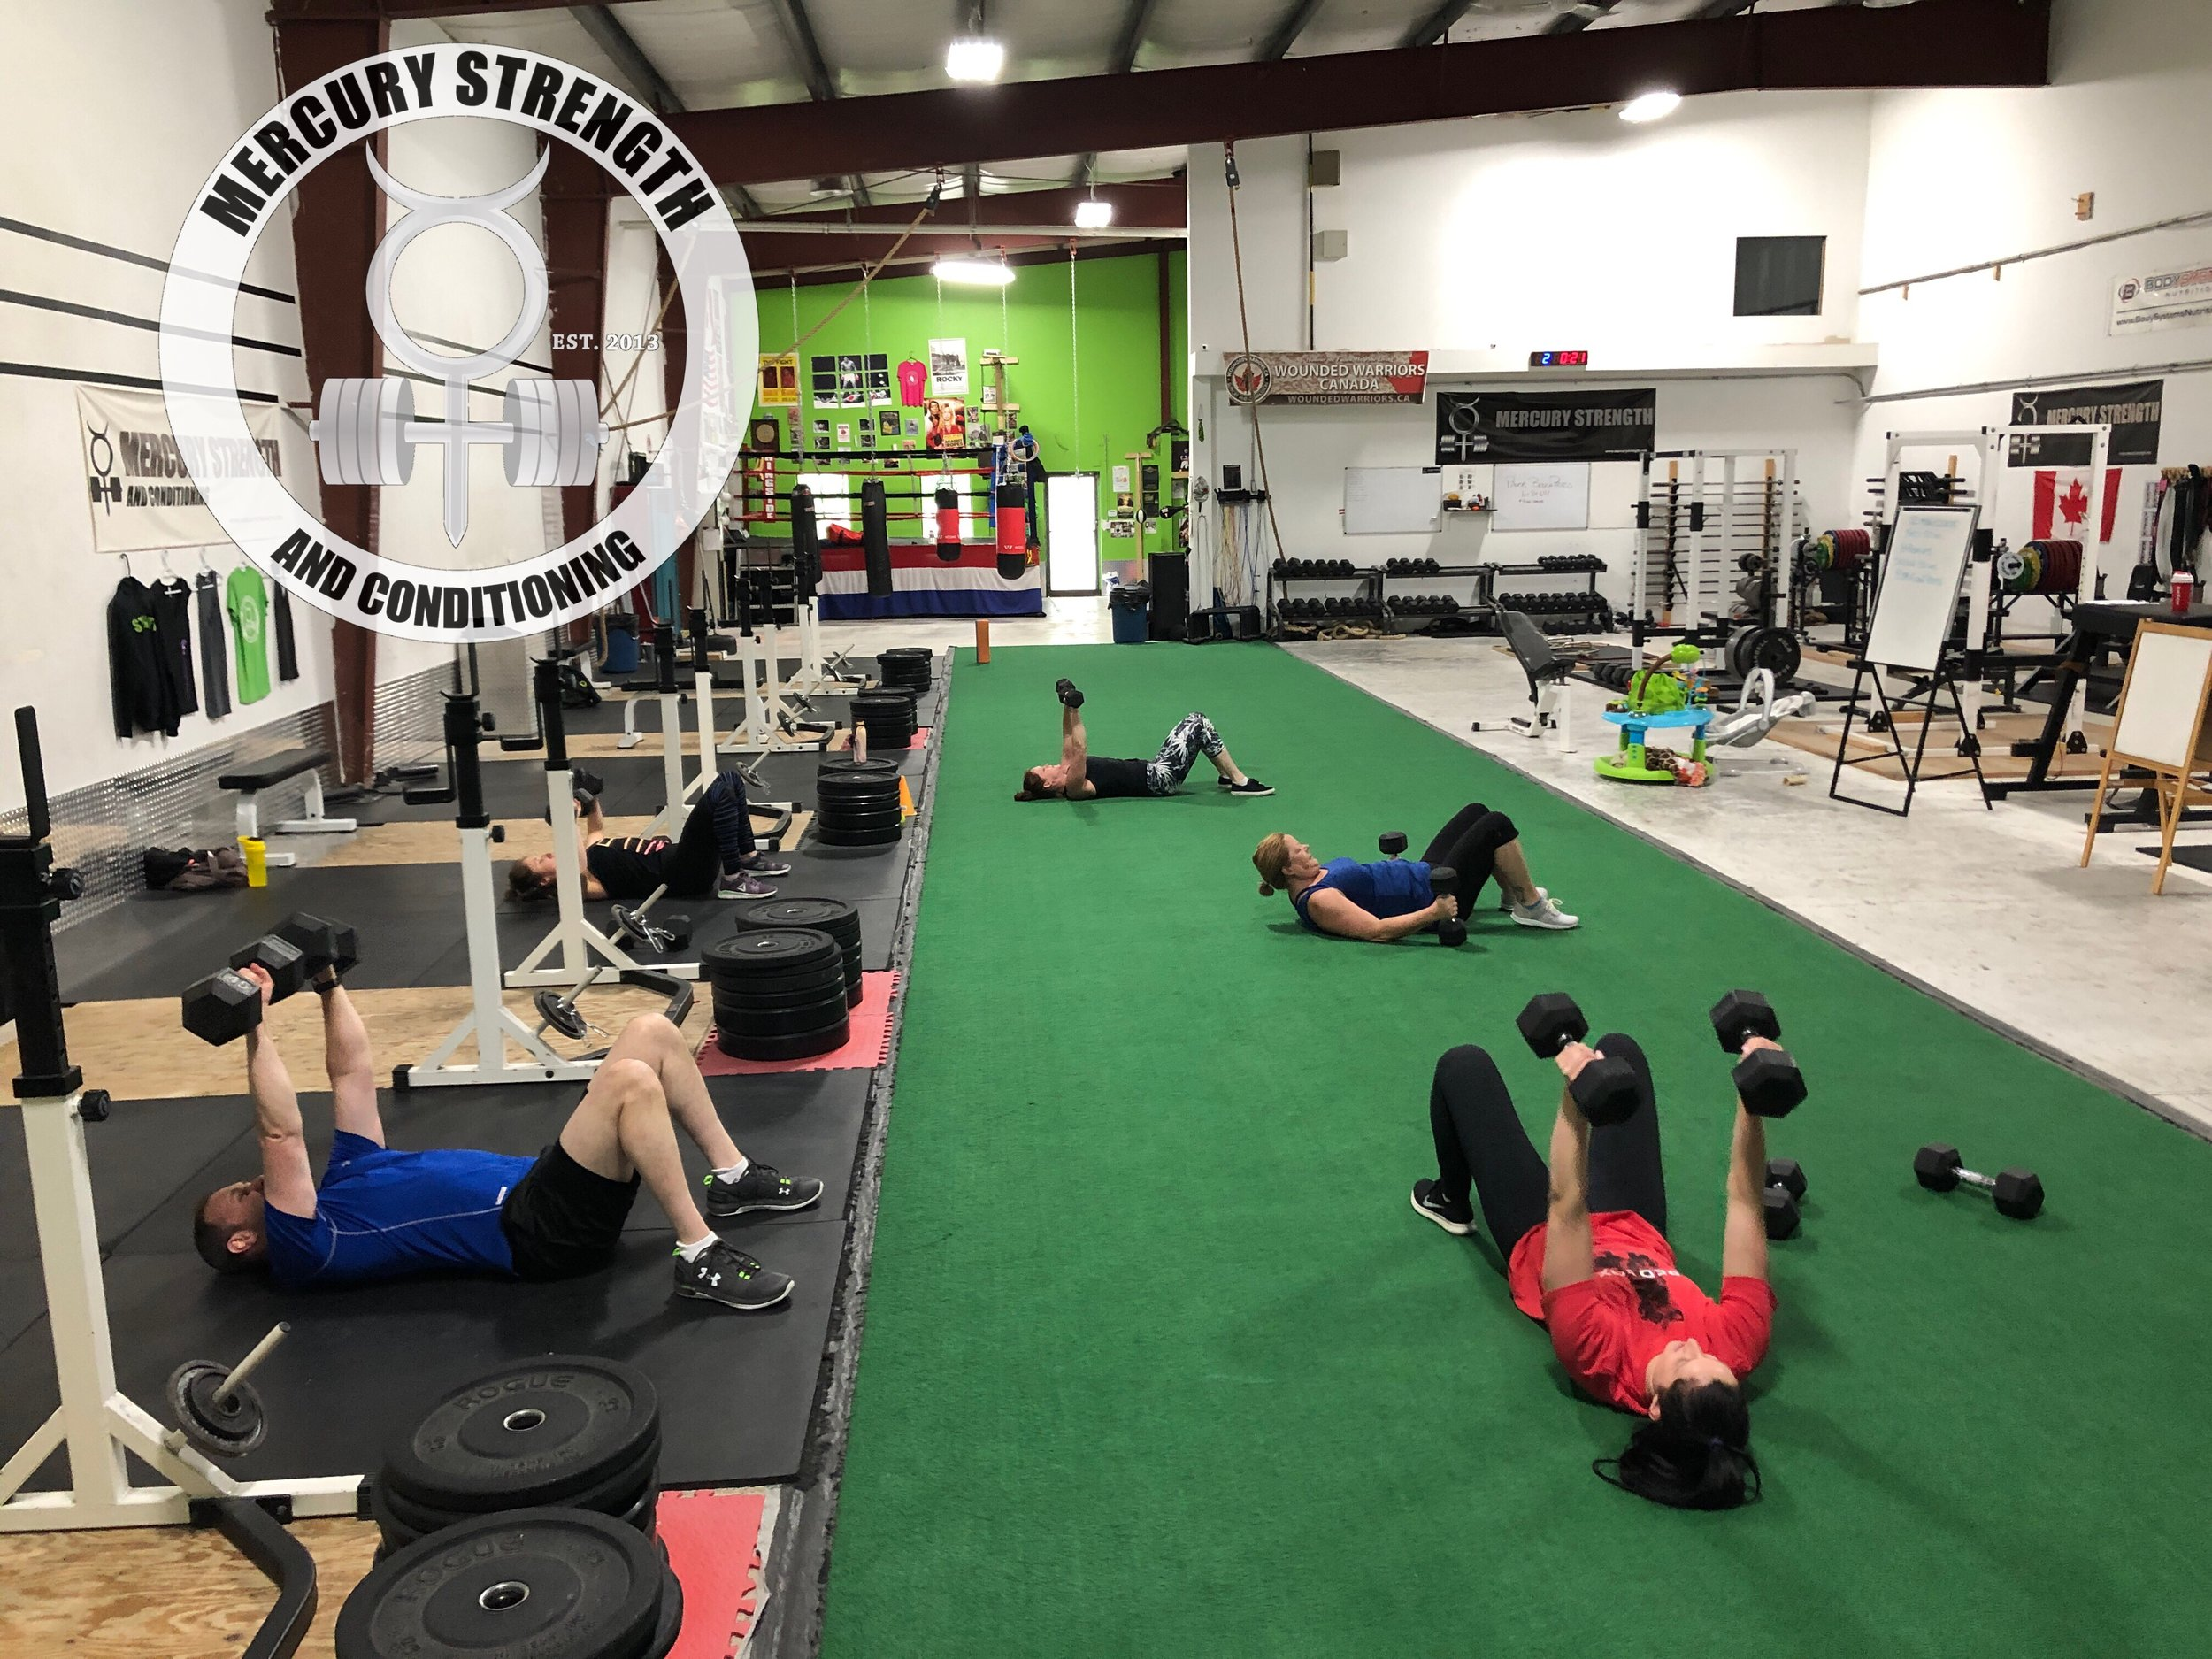 Gym-powerlifting-fitness-personal training-training-bootcamp-crossfit-kingston-kingston gym-kids-mercury-strength-conditioning-athlete-dumbbell-floor press